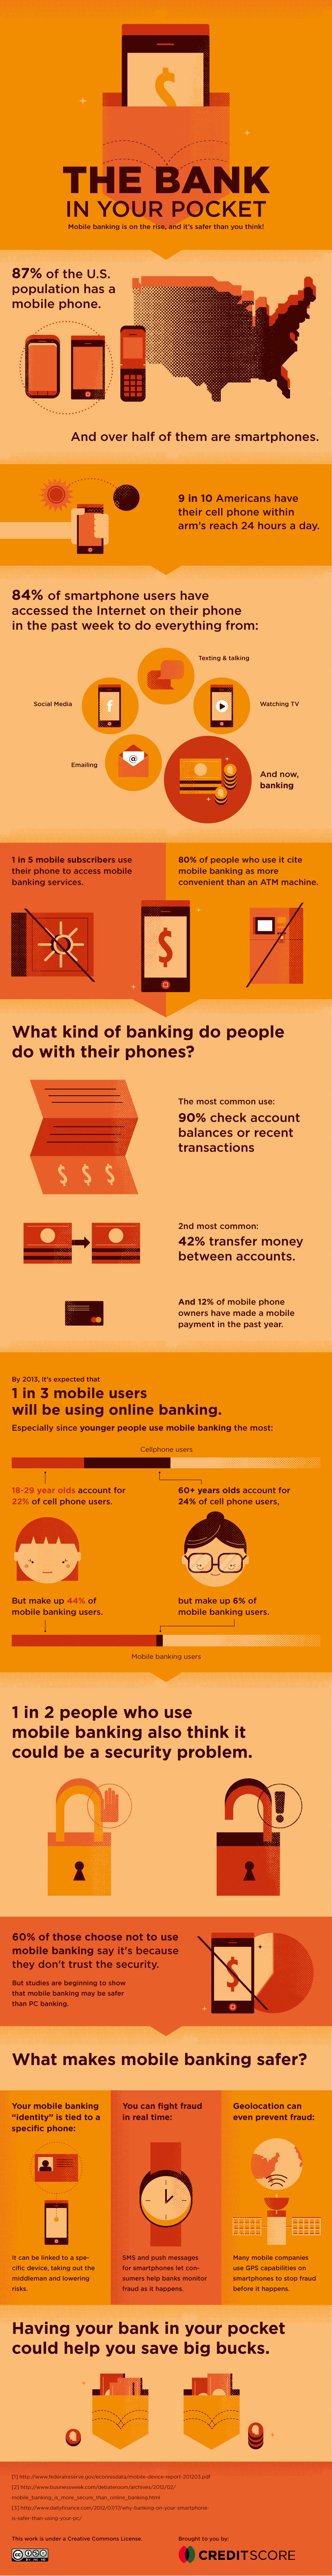 Mobile Banking Adoption-Infographic